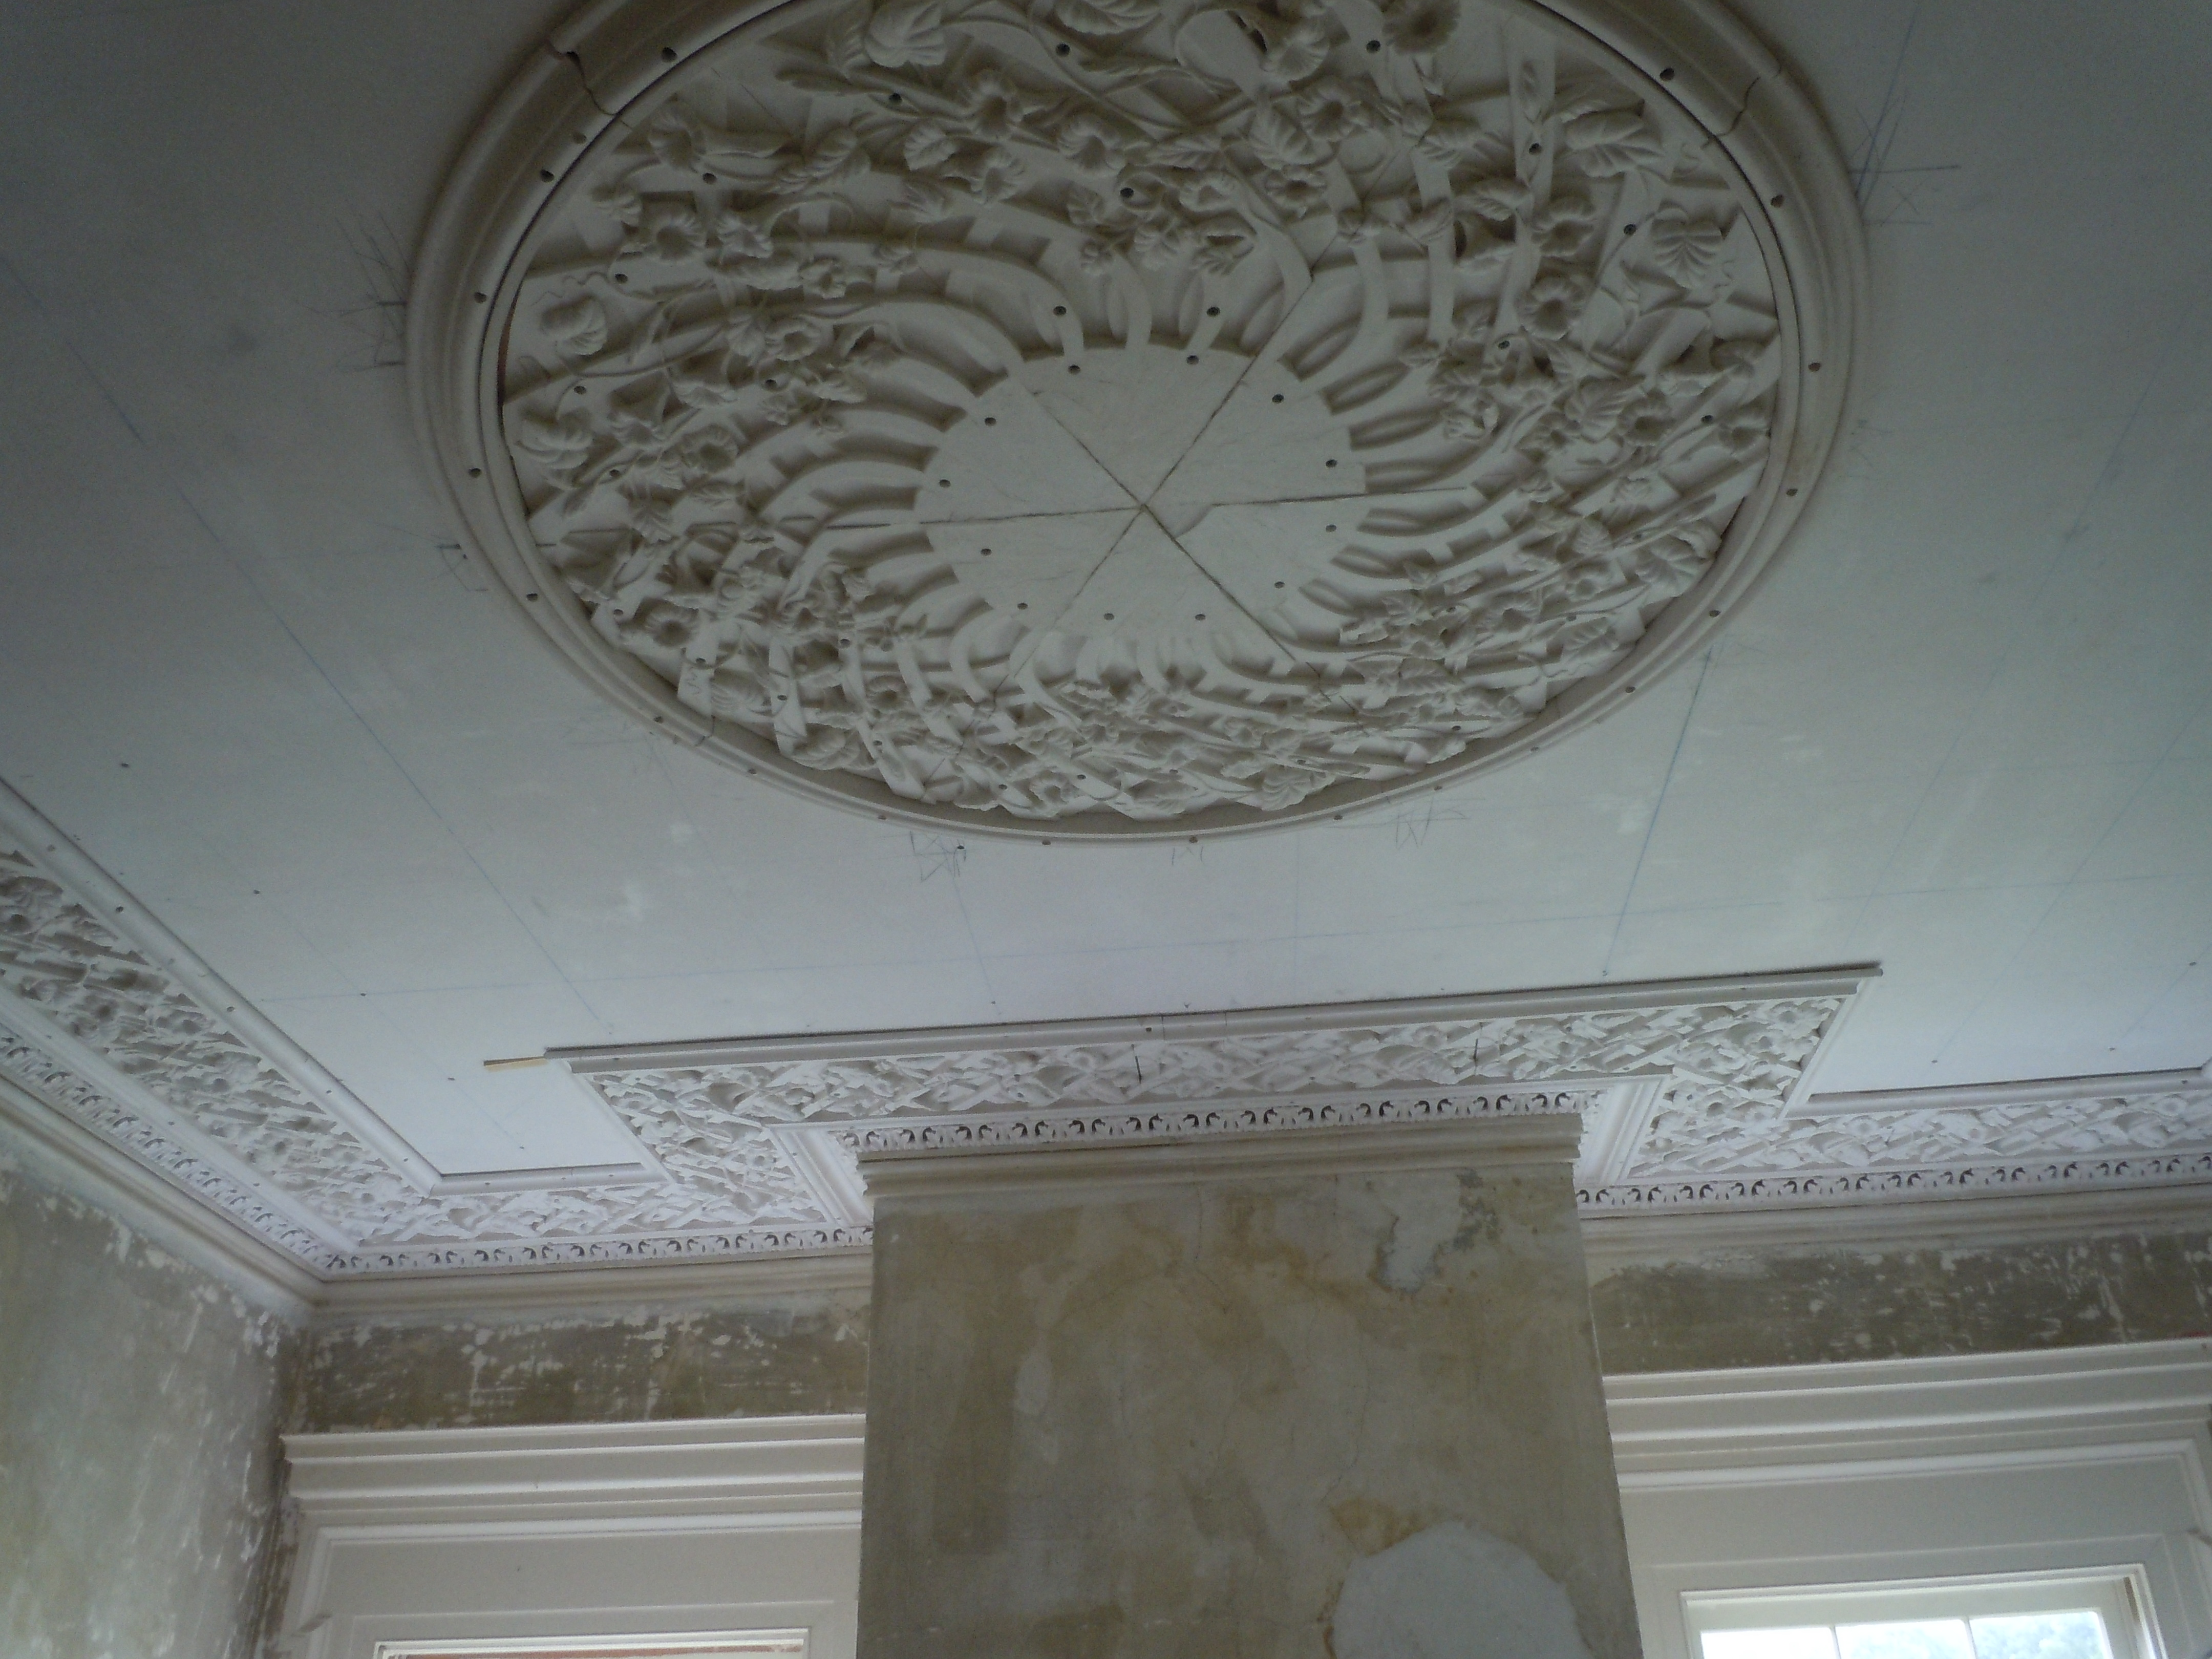 Lattice perimeter and partially installed center medallion in the front room.